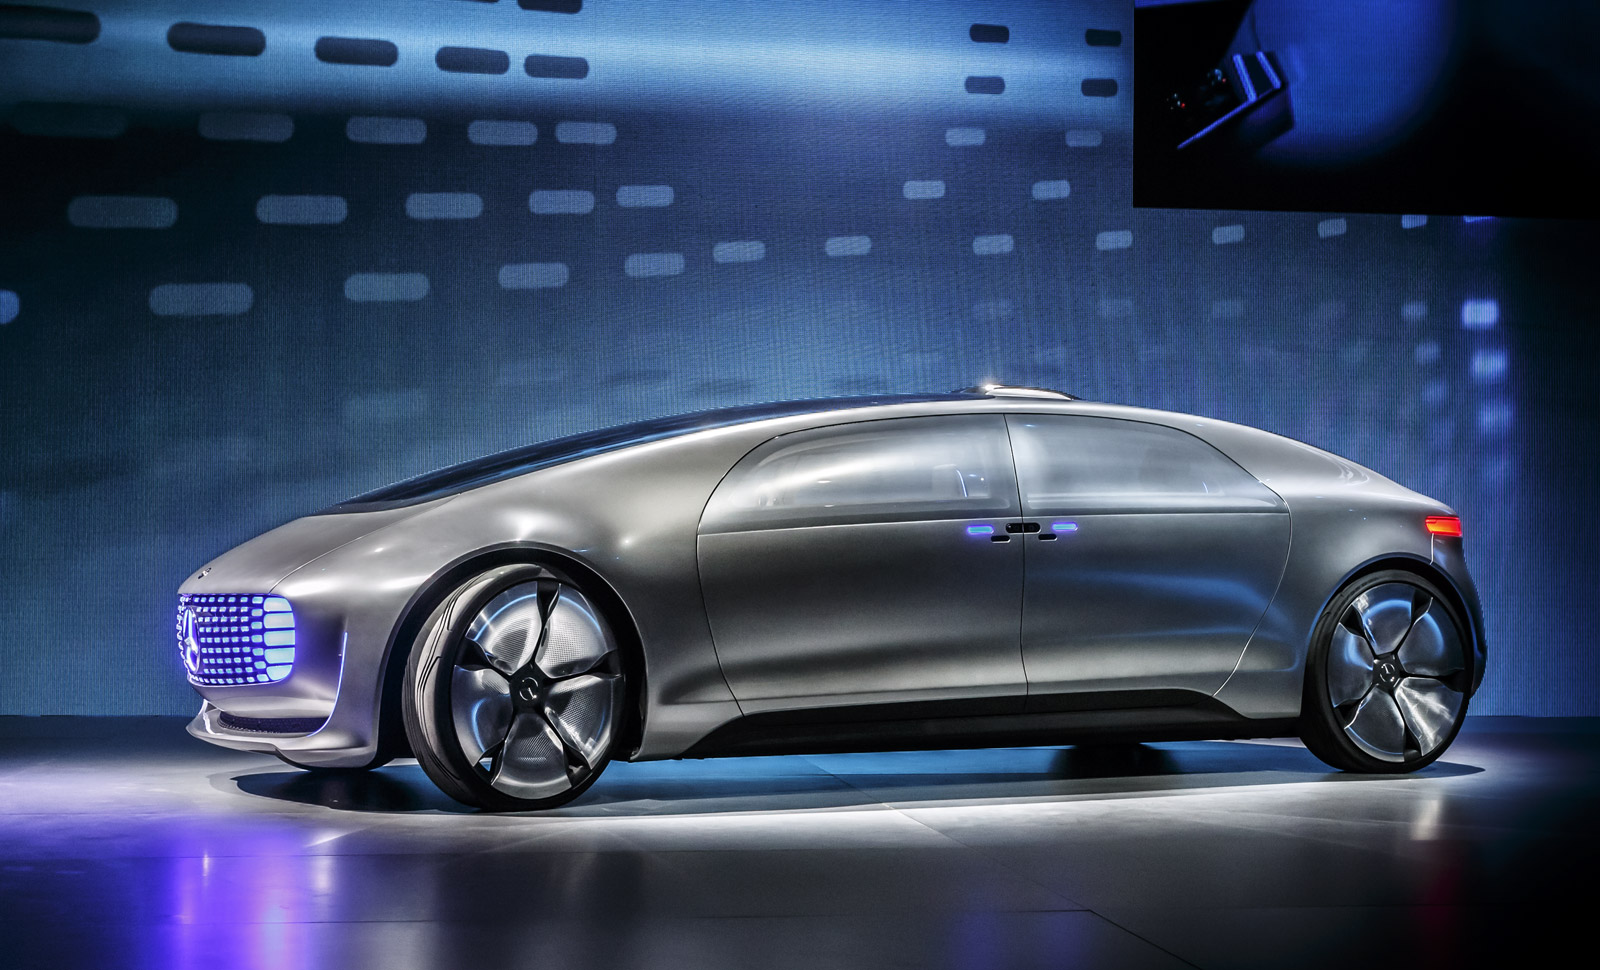 Toyota fuel cells new onstar services mercedes f015 for Mercedes benz of charlottesville